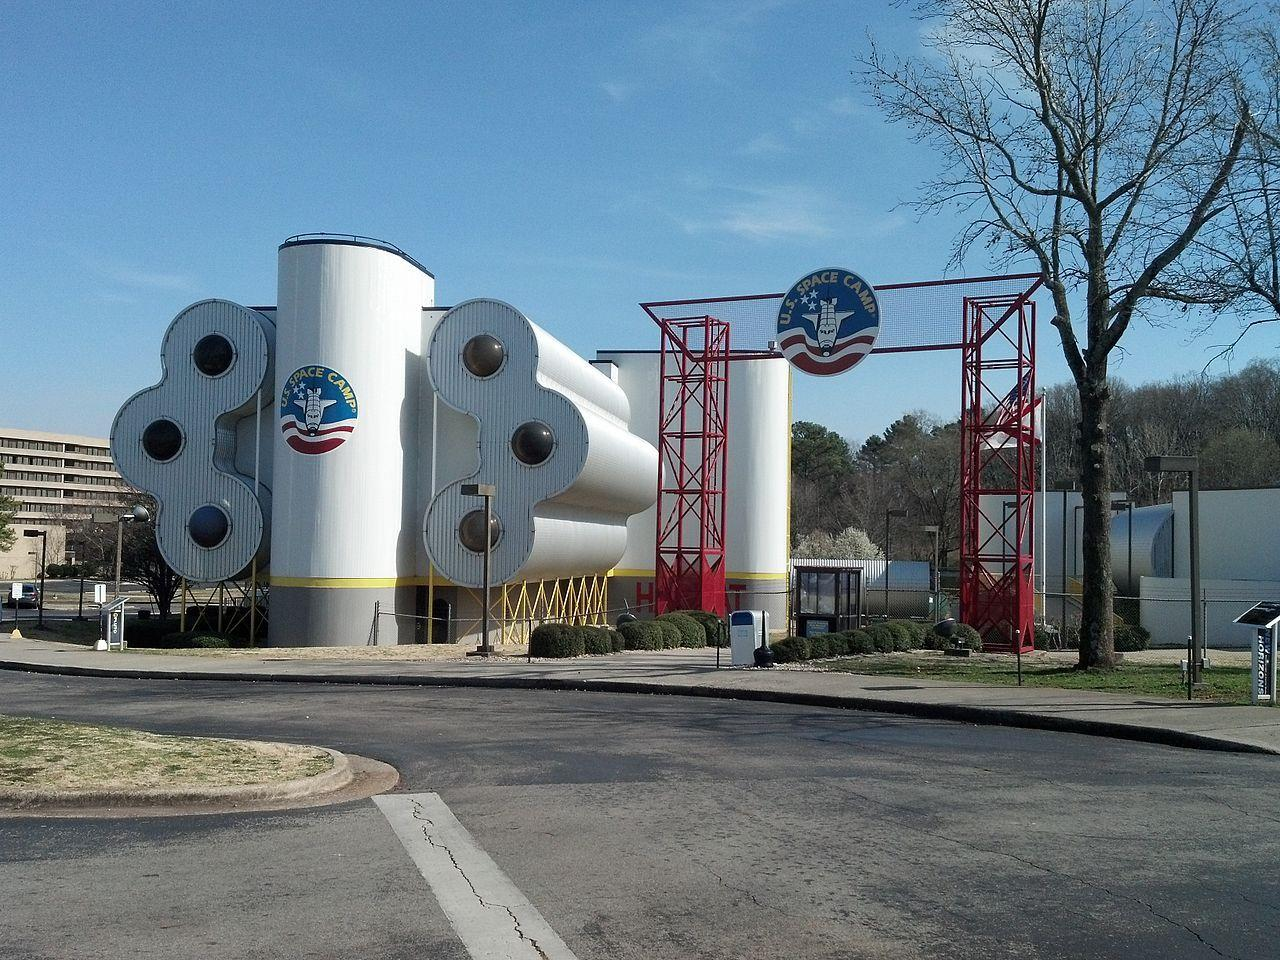 """<p>Huntsville: At <a href=""""http://www.spacecamp.com/"""" target=""""_blank"""">Space Camp</a> you'll get your hands on flight simulators, lunar landers, model rockets, and more.</p>"""